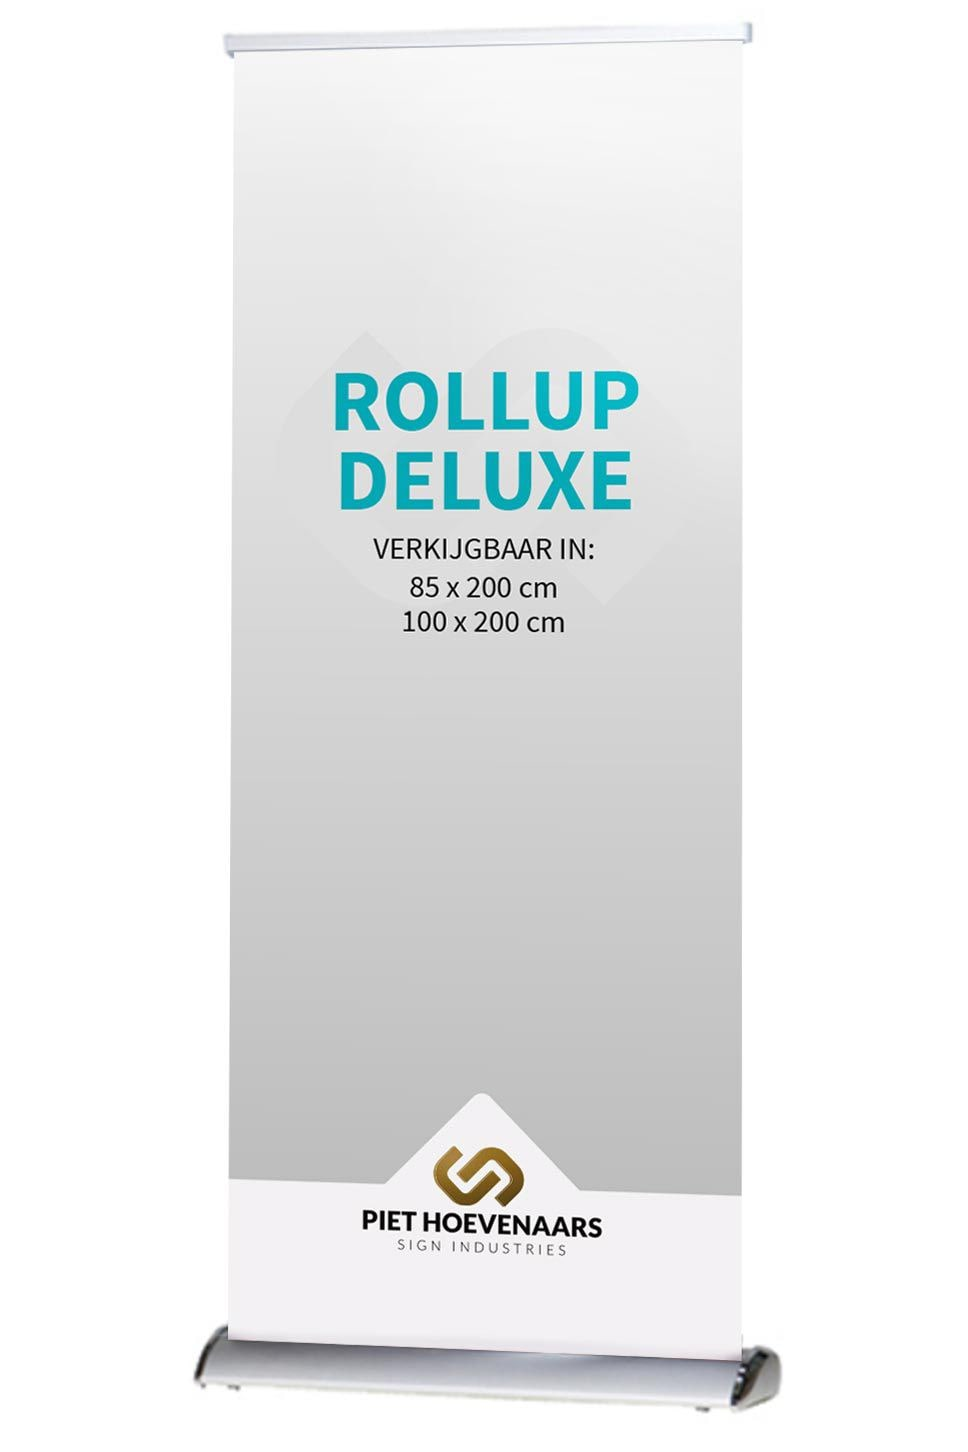 Rollup Deluxe